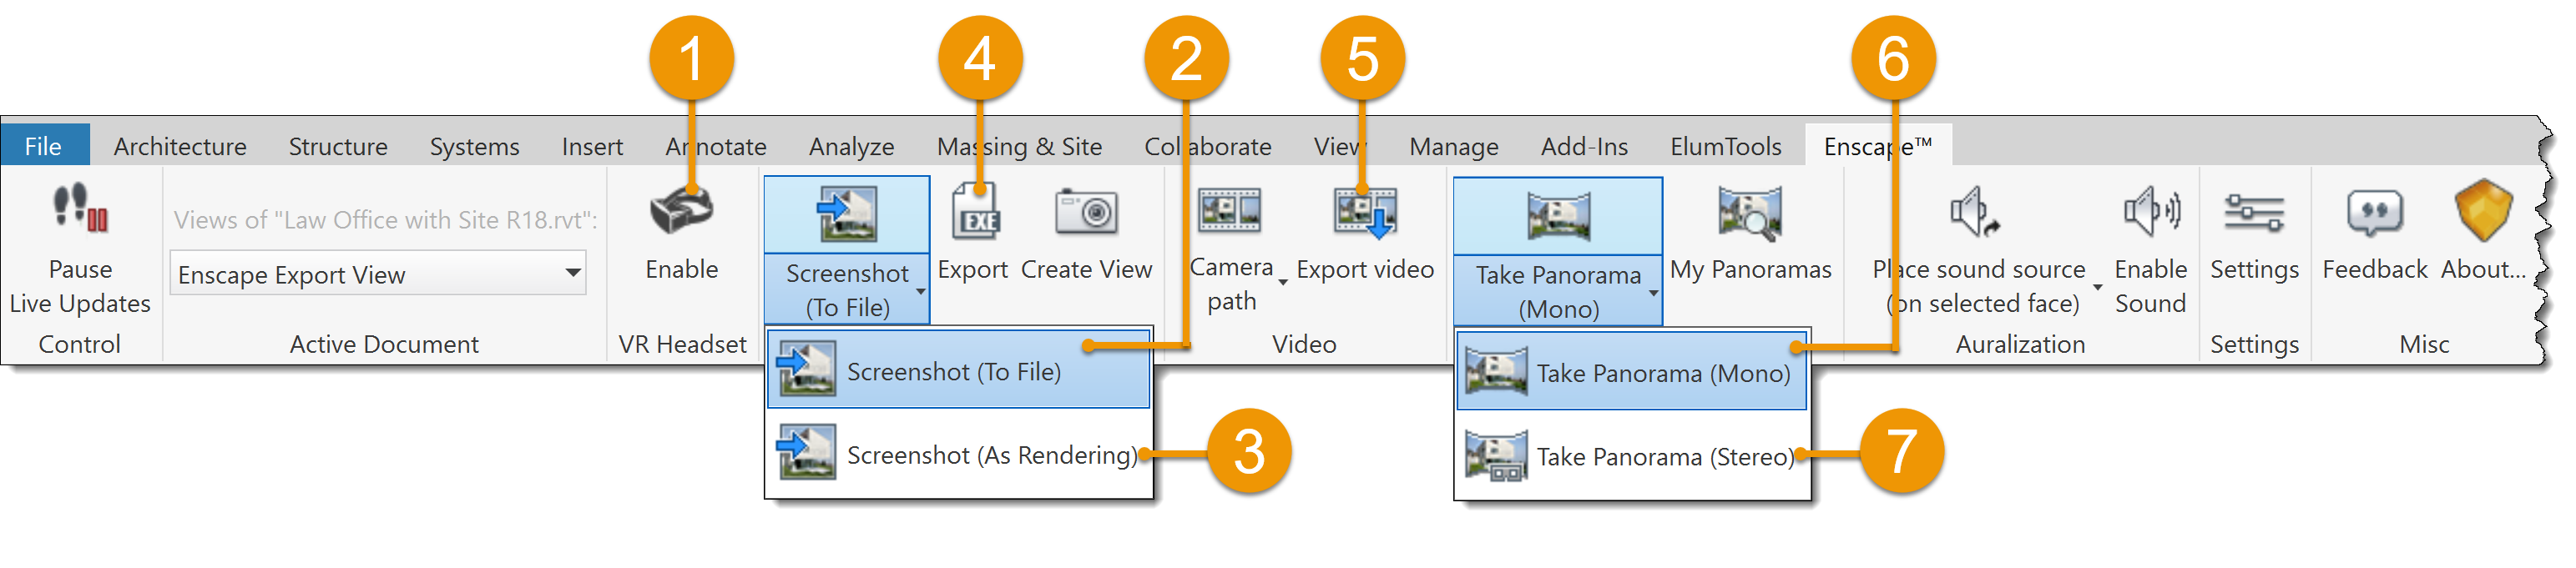 Flash export png sequence. Options in enscape listed